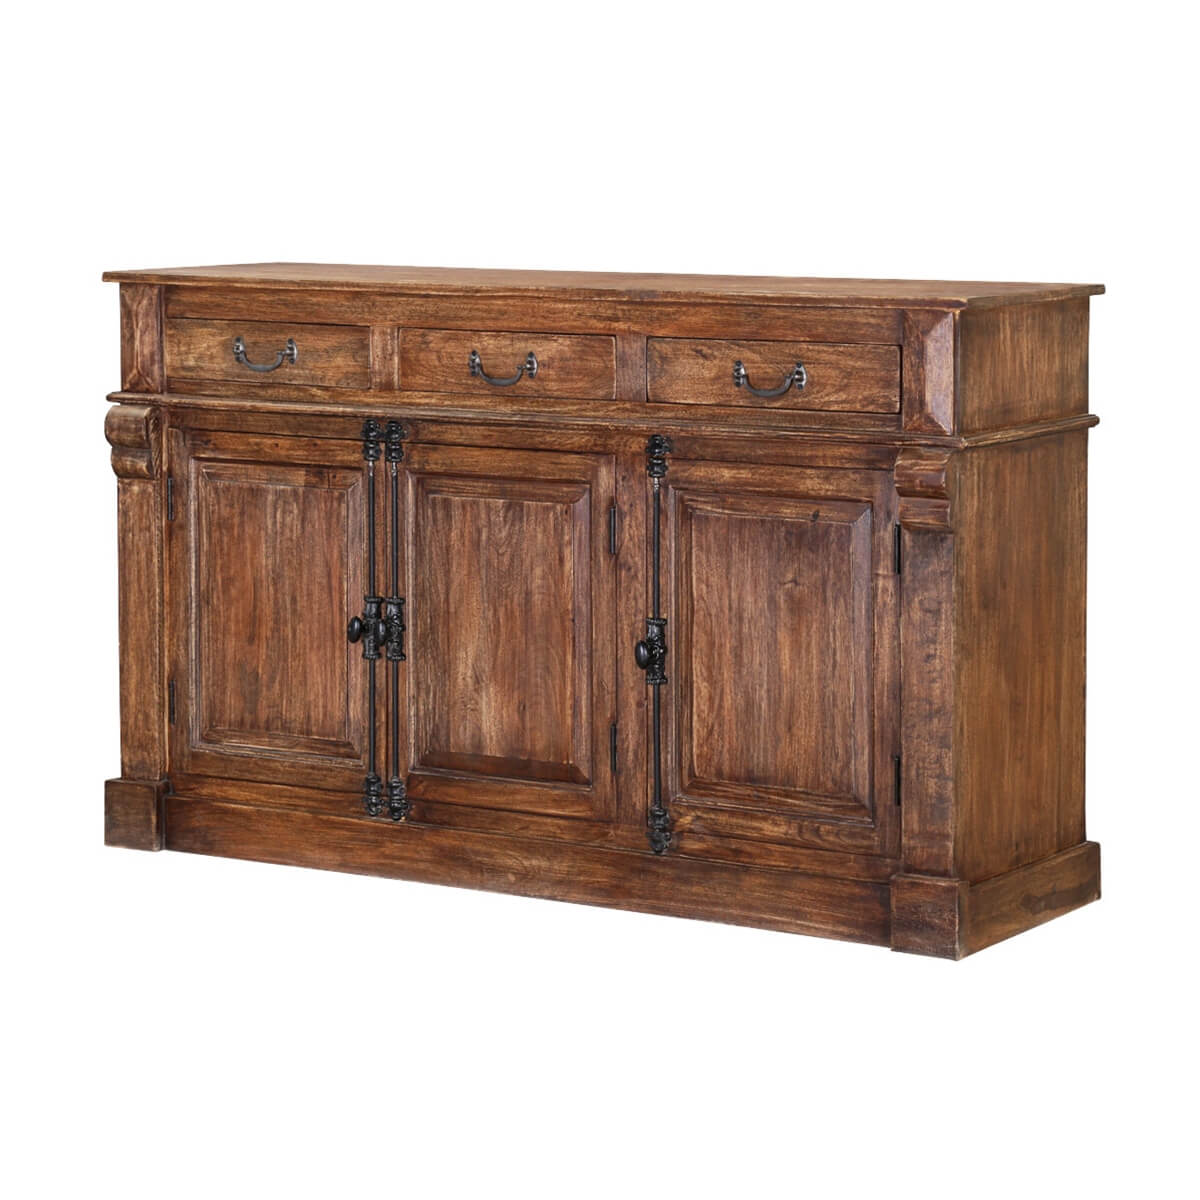 Ansonia rustic solid wood drawer sideboard cabinet